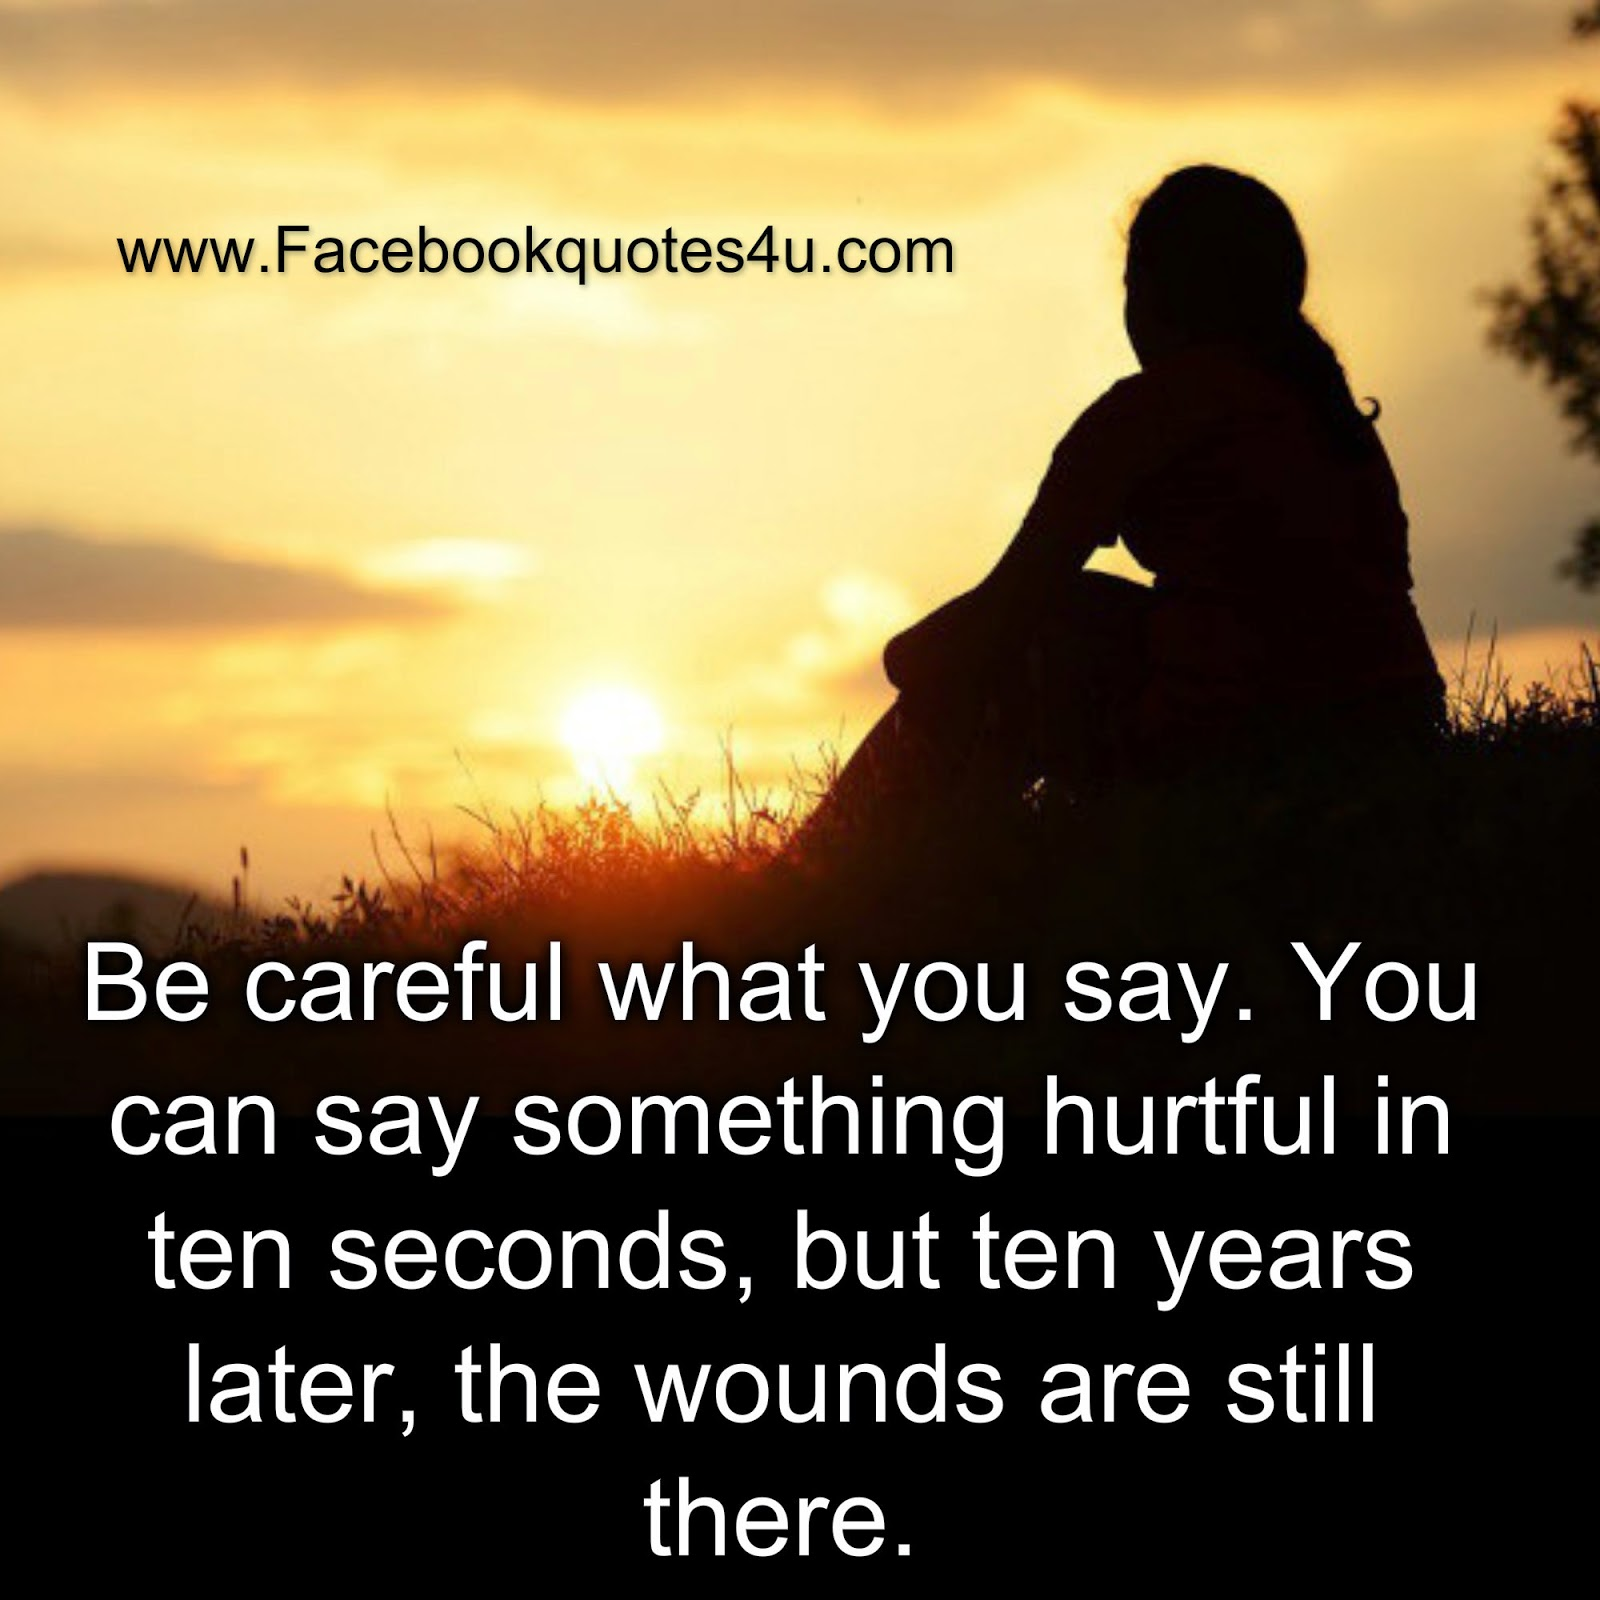 Hurtful Love Quotes Mesmerizing Quotes You Can Say Something Hurtful In 10 Seconds